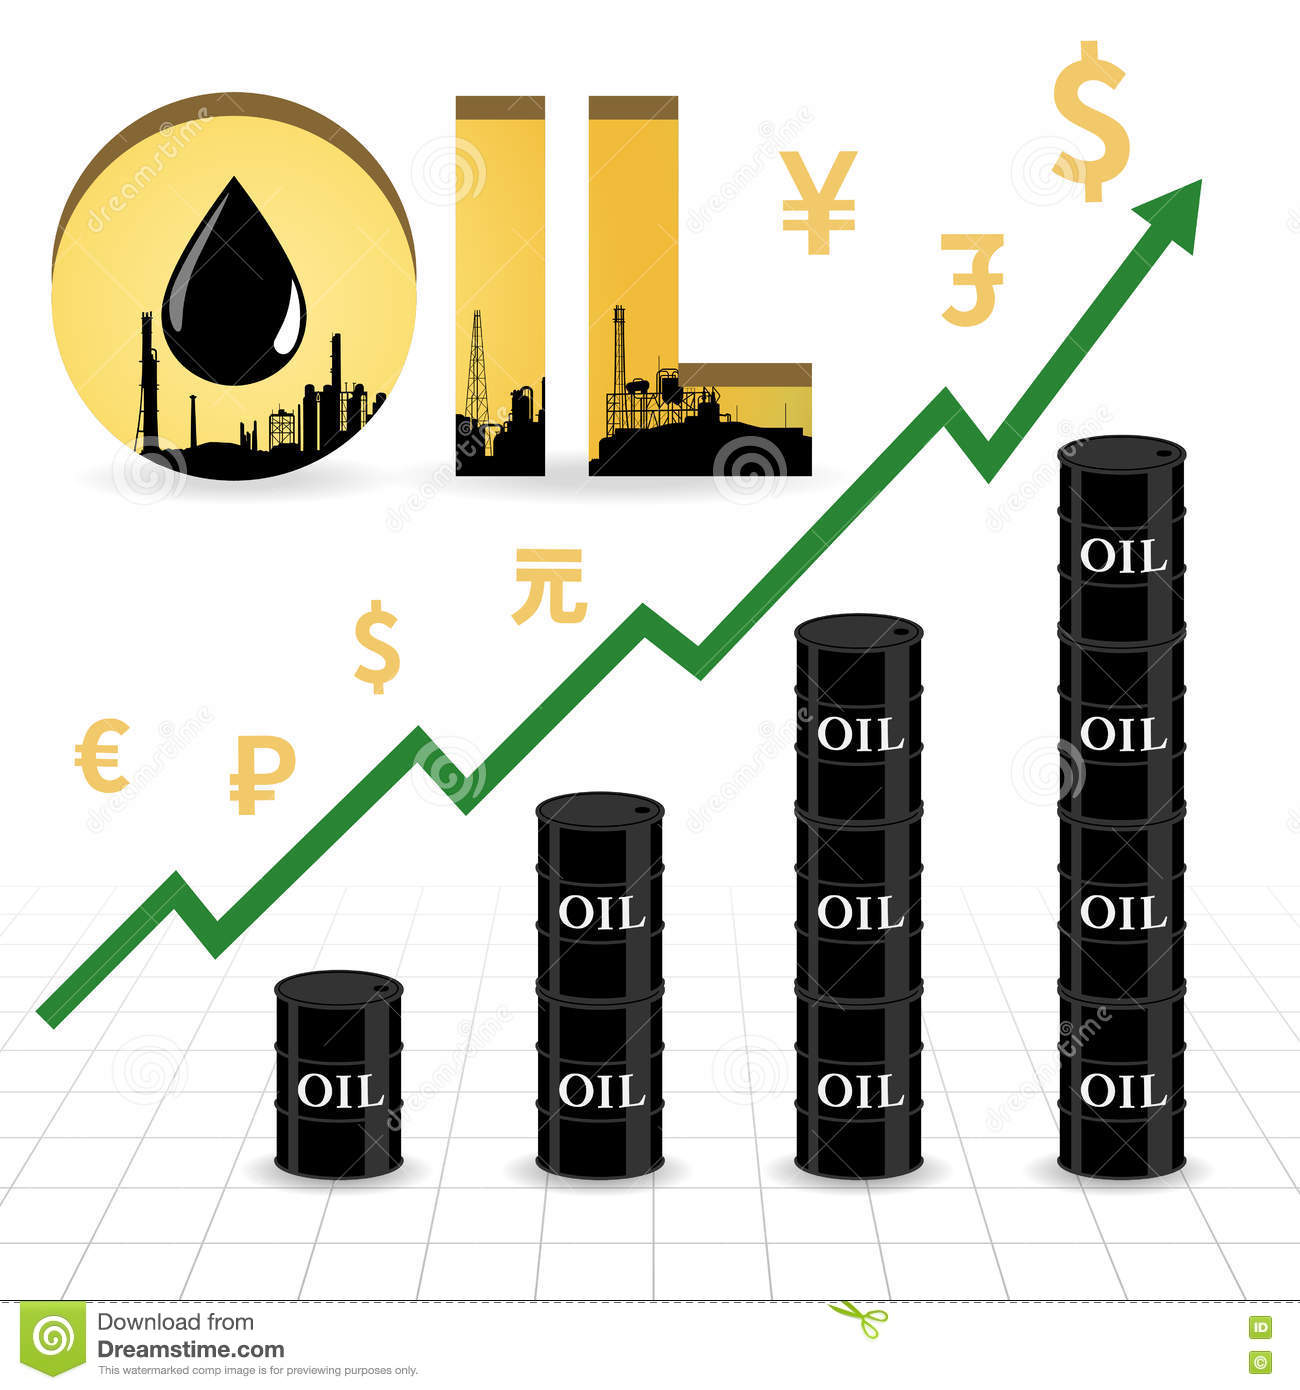 Crude Oil Price Increase Abstract Illustration Stock Vector